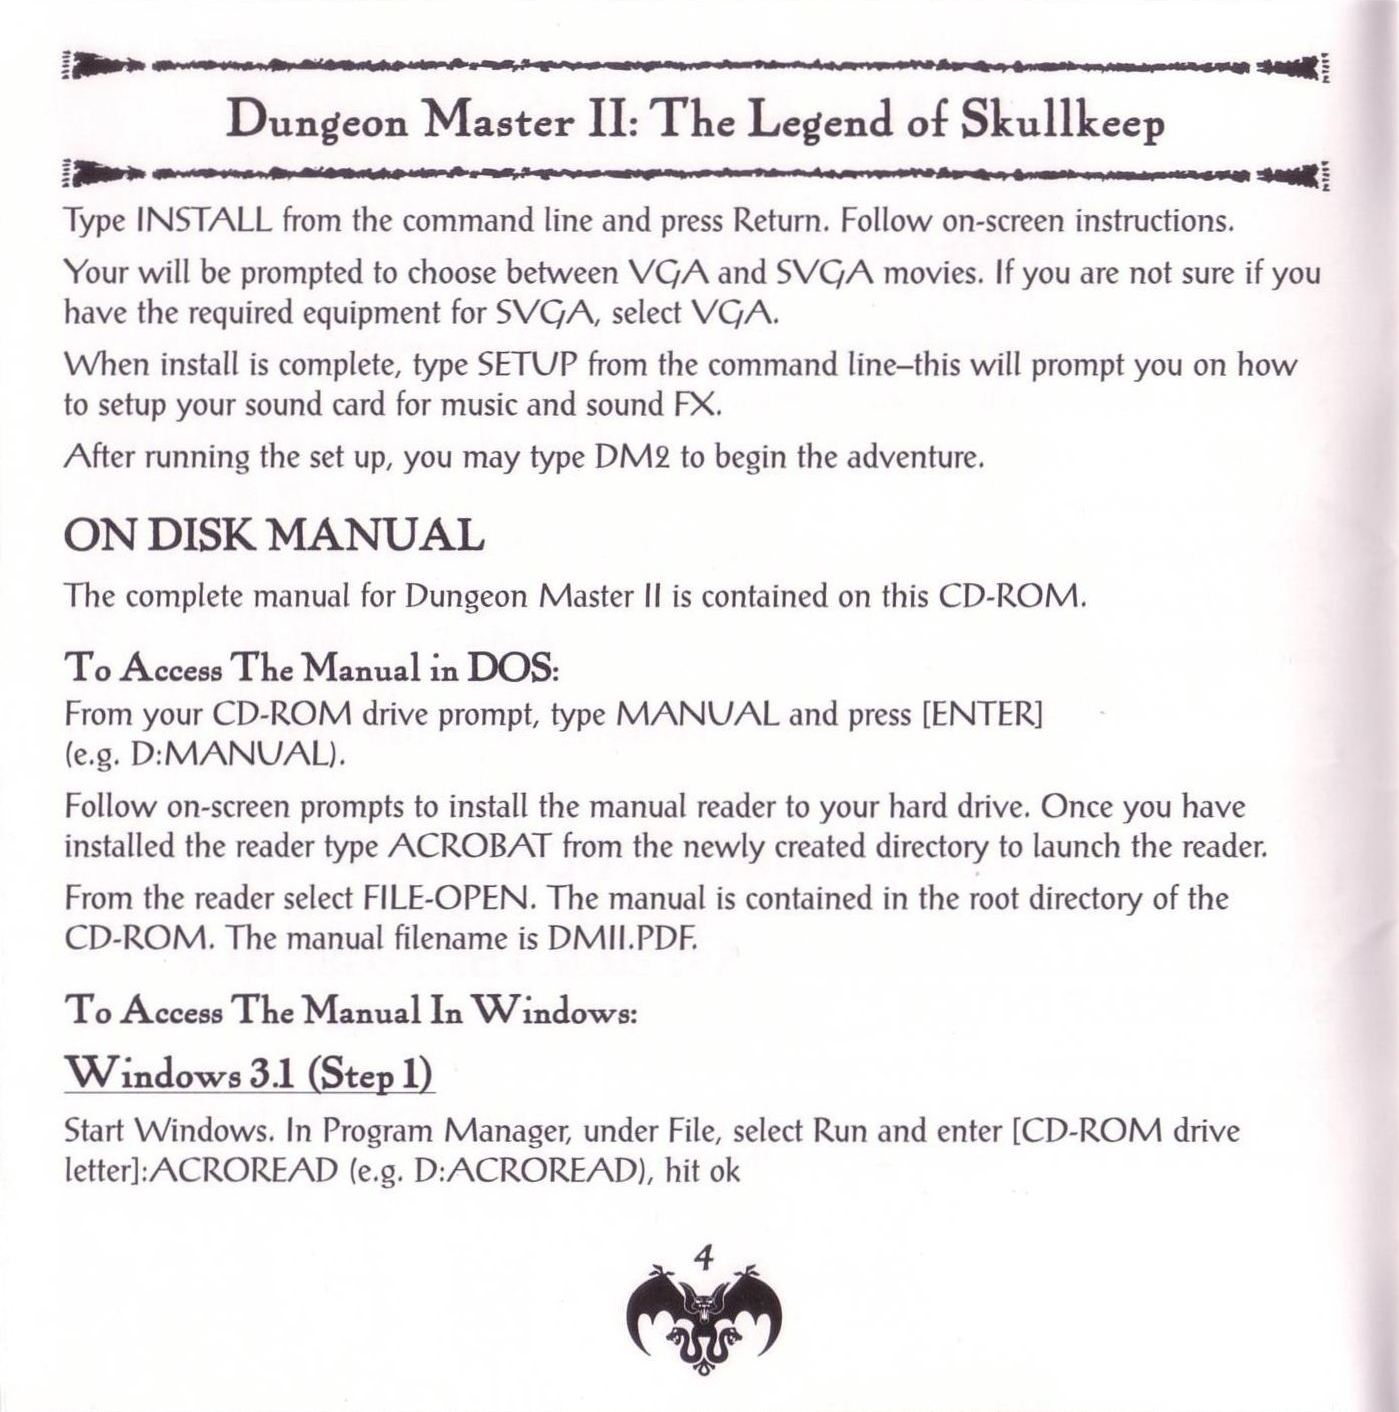 Game - Dungeon Master II - US - PC - Jewel Case - Booklet - Page 006 - Scan